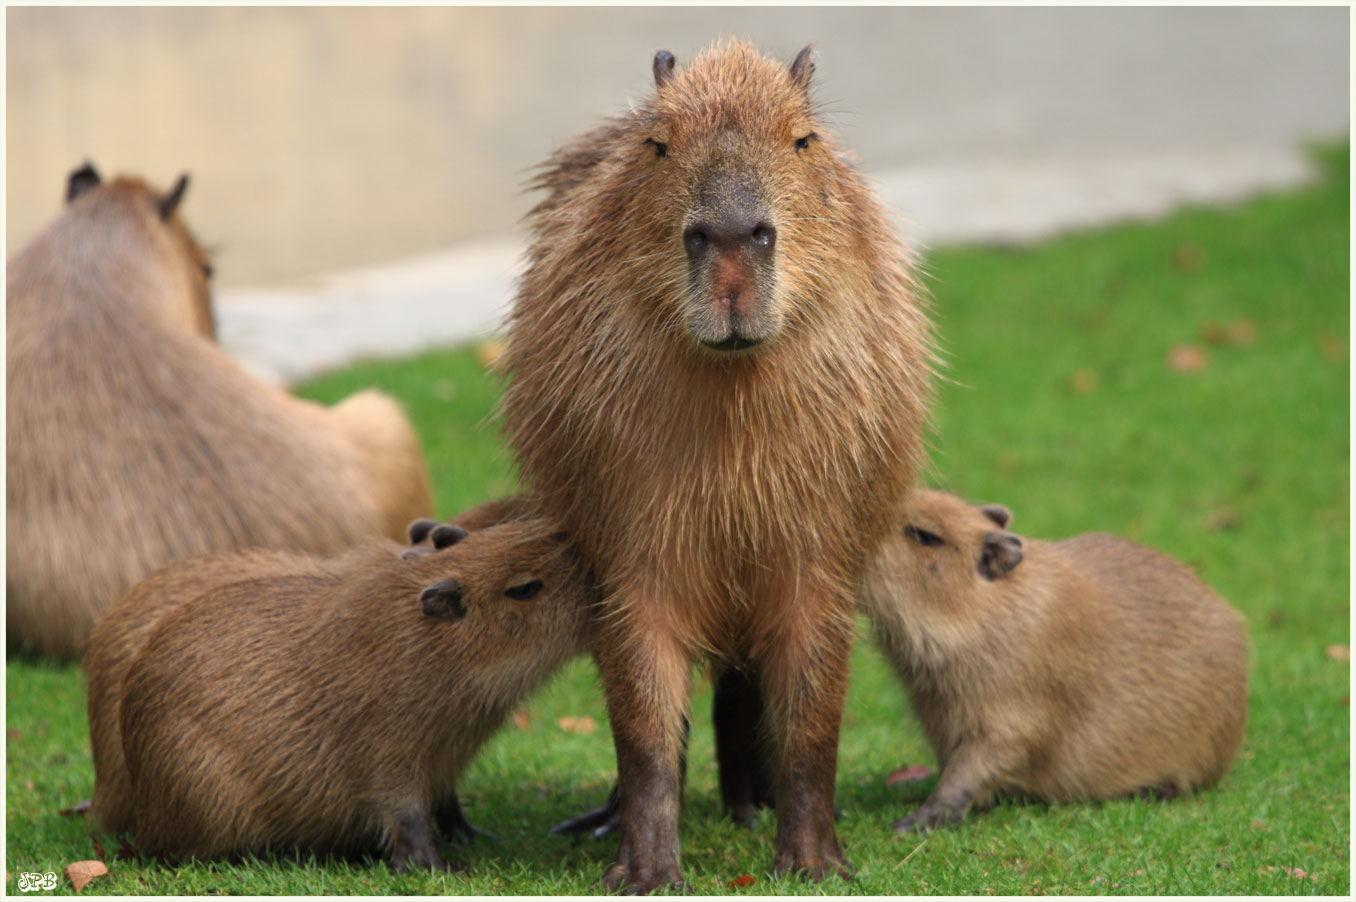 s ugendes capybara im zoo k ln foto bild tiere zoo wildpark falknerei s ugetiere bilder. Black Bedroom Furniture Sets. Home Design Ideas